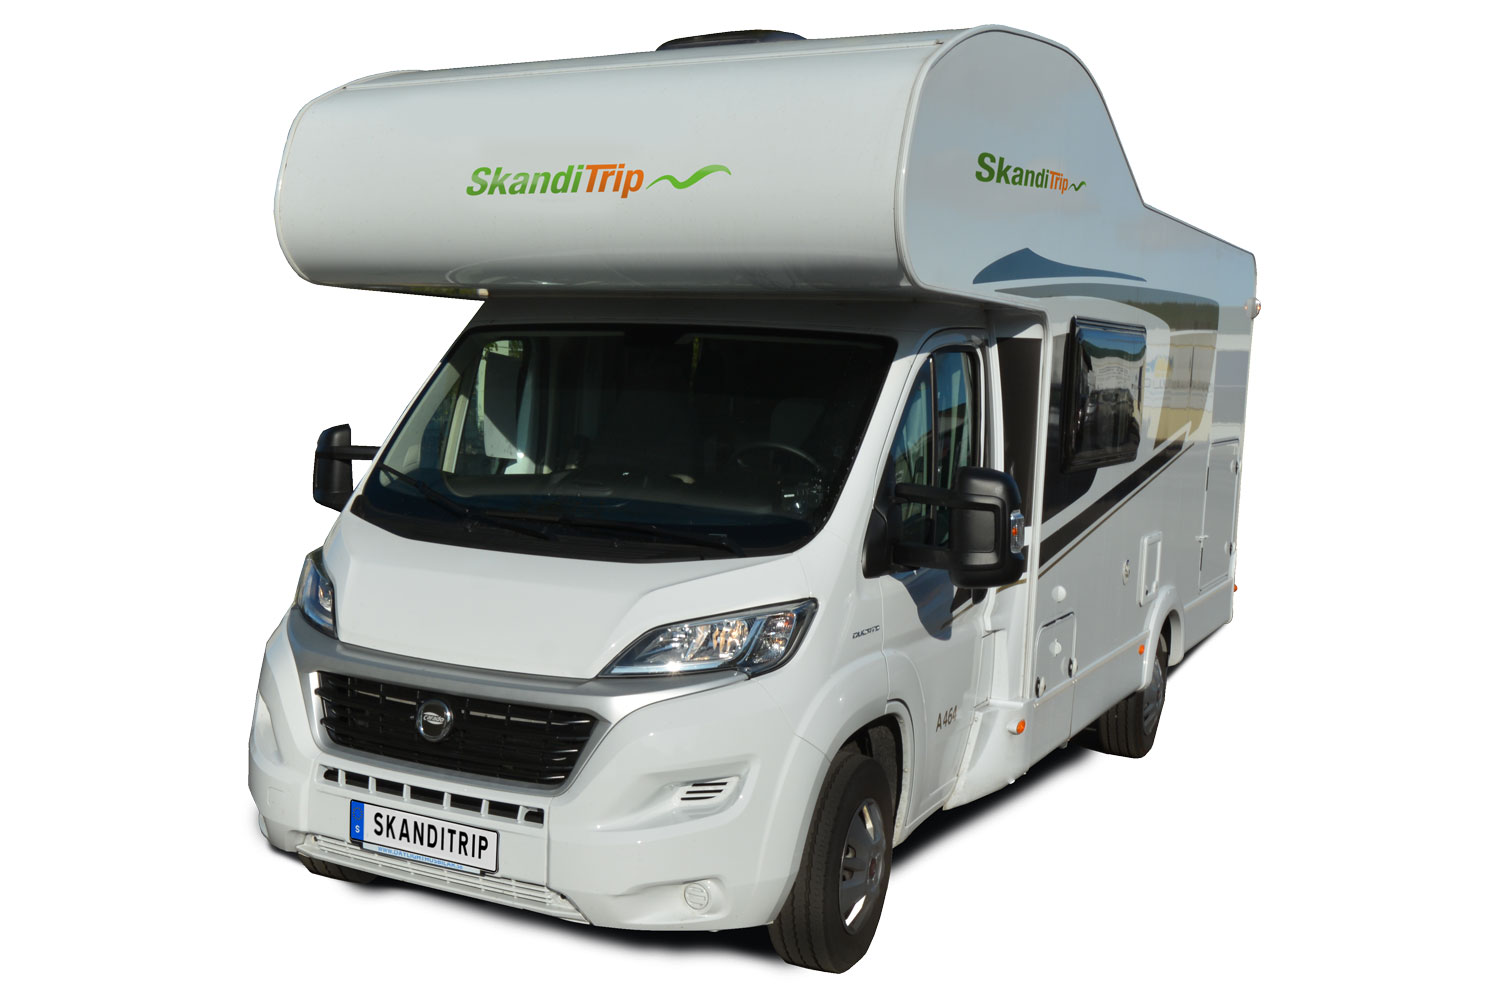 SkandiTrip Family Luxury motorhome model